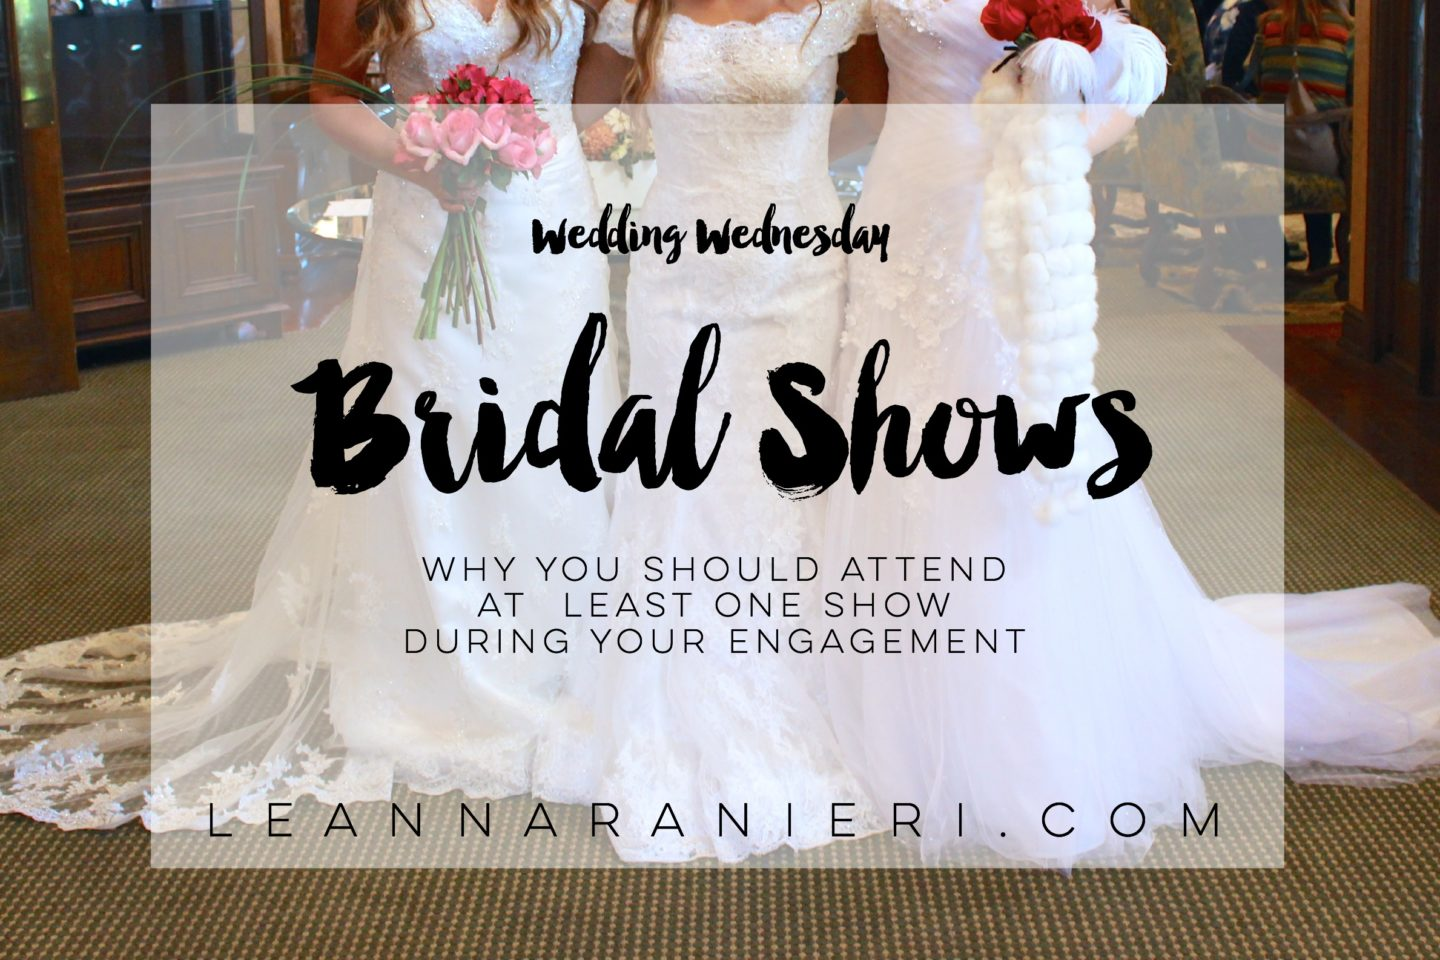 Why You Should Attend at Least One Bridal Show During Your Engagement